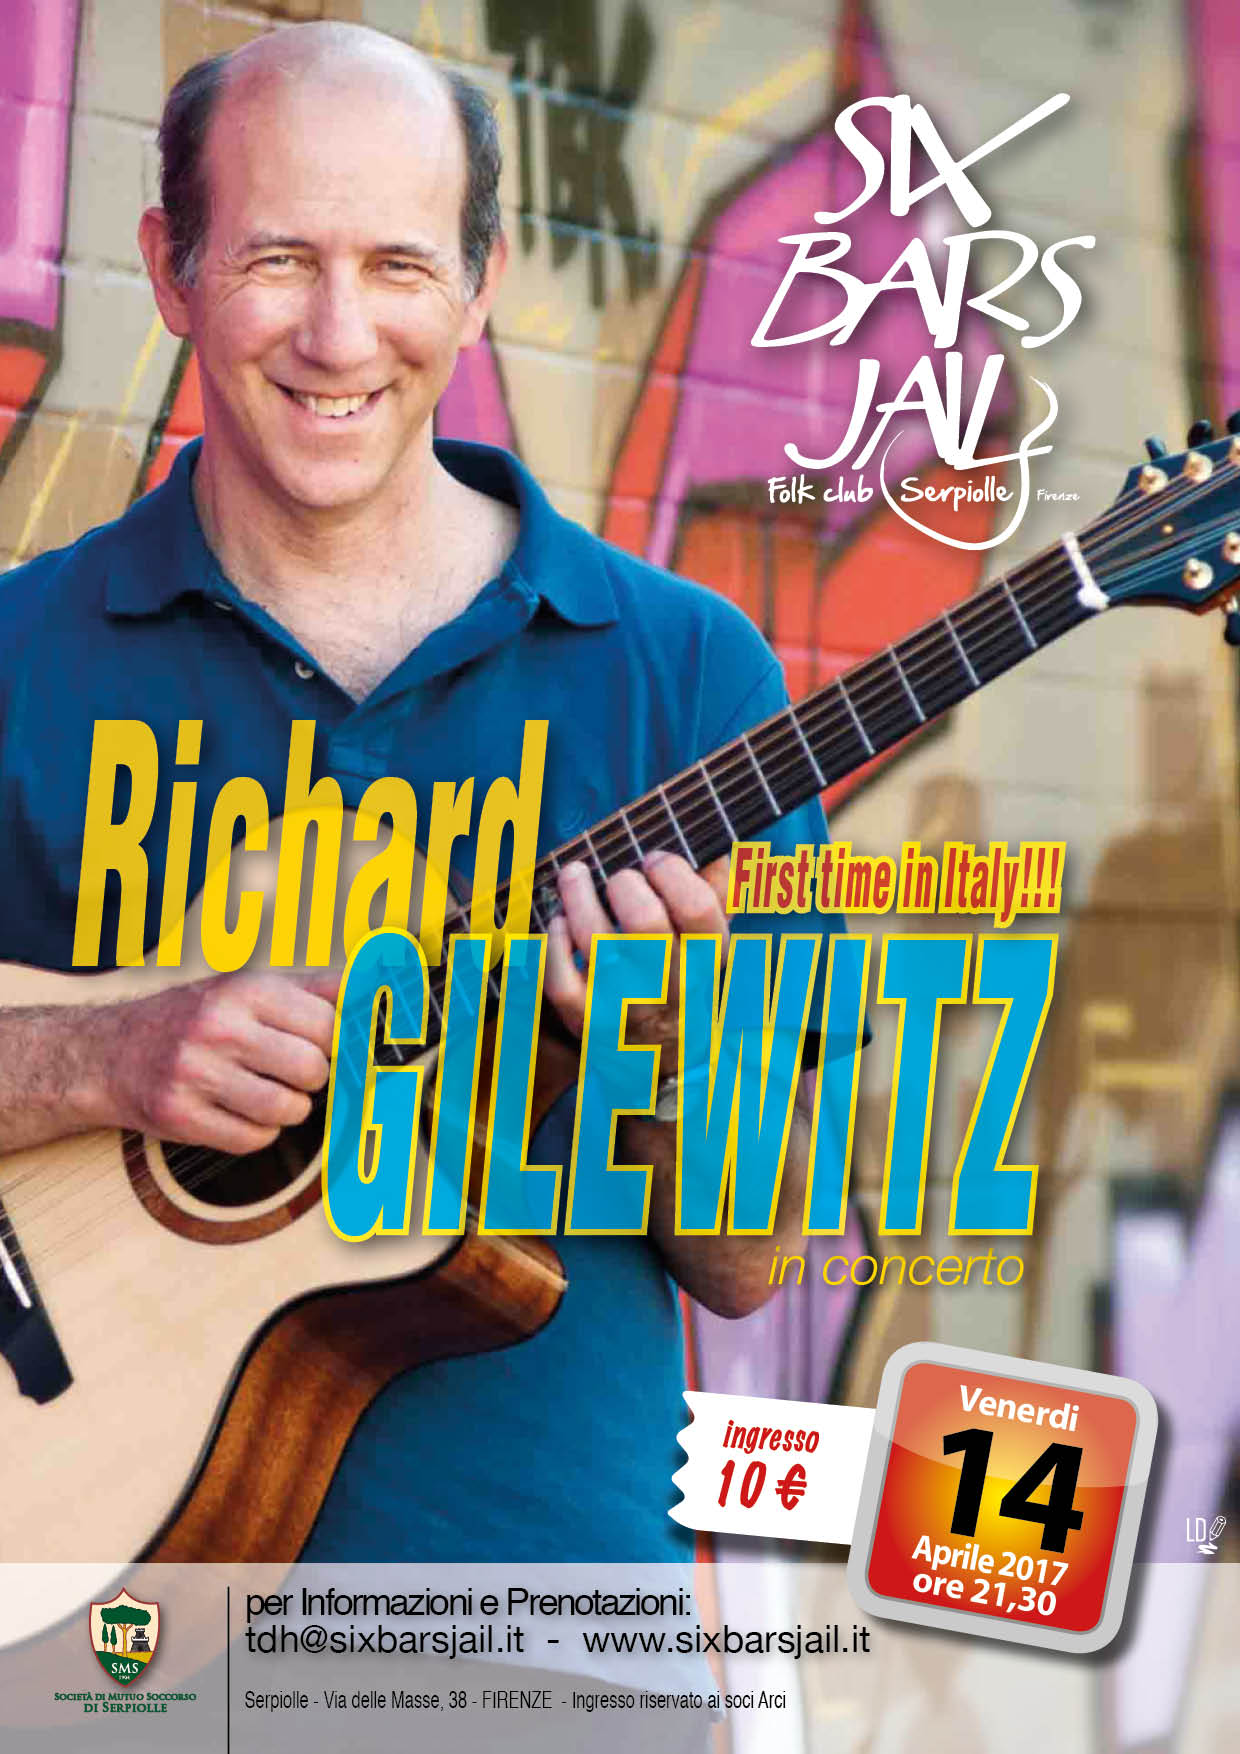 Richard Gilewitz in concerto al Six Bars Jail - 14.4.17